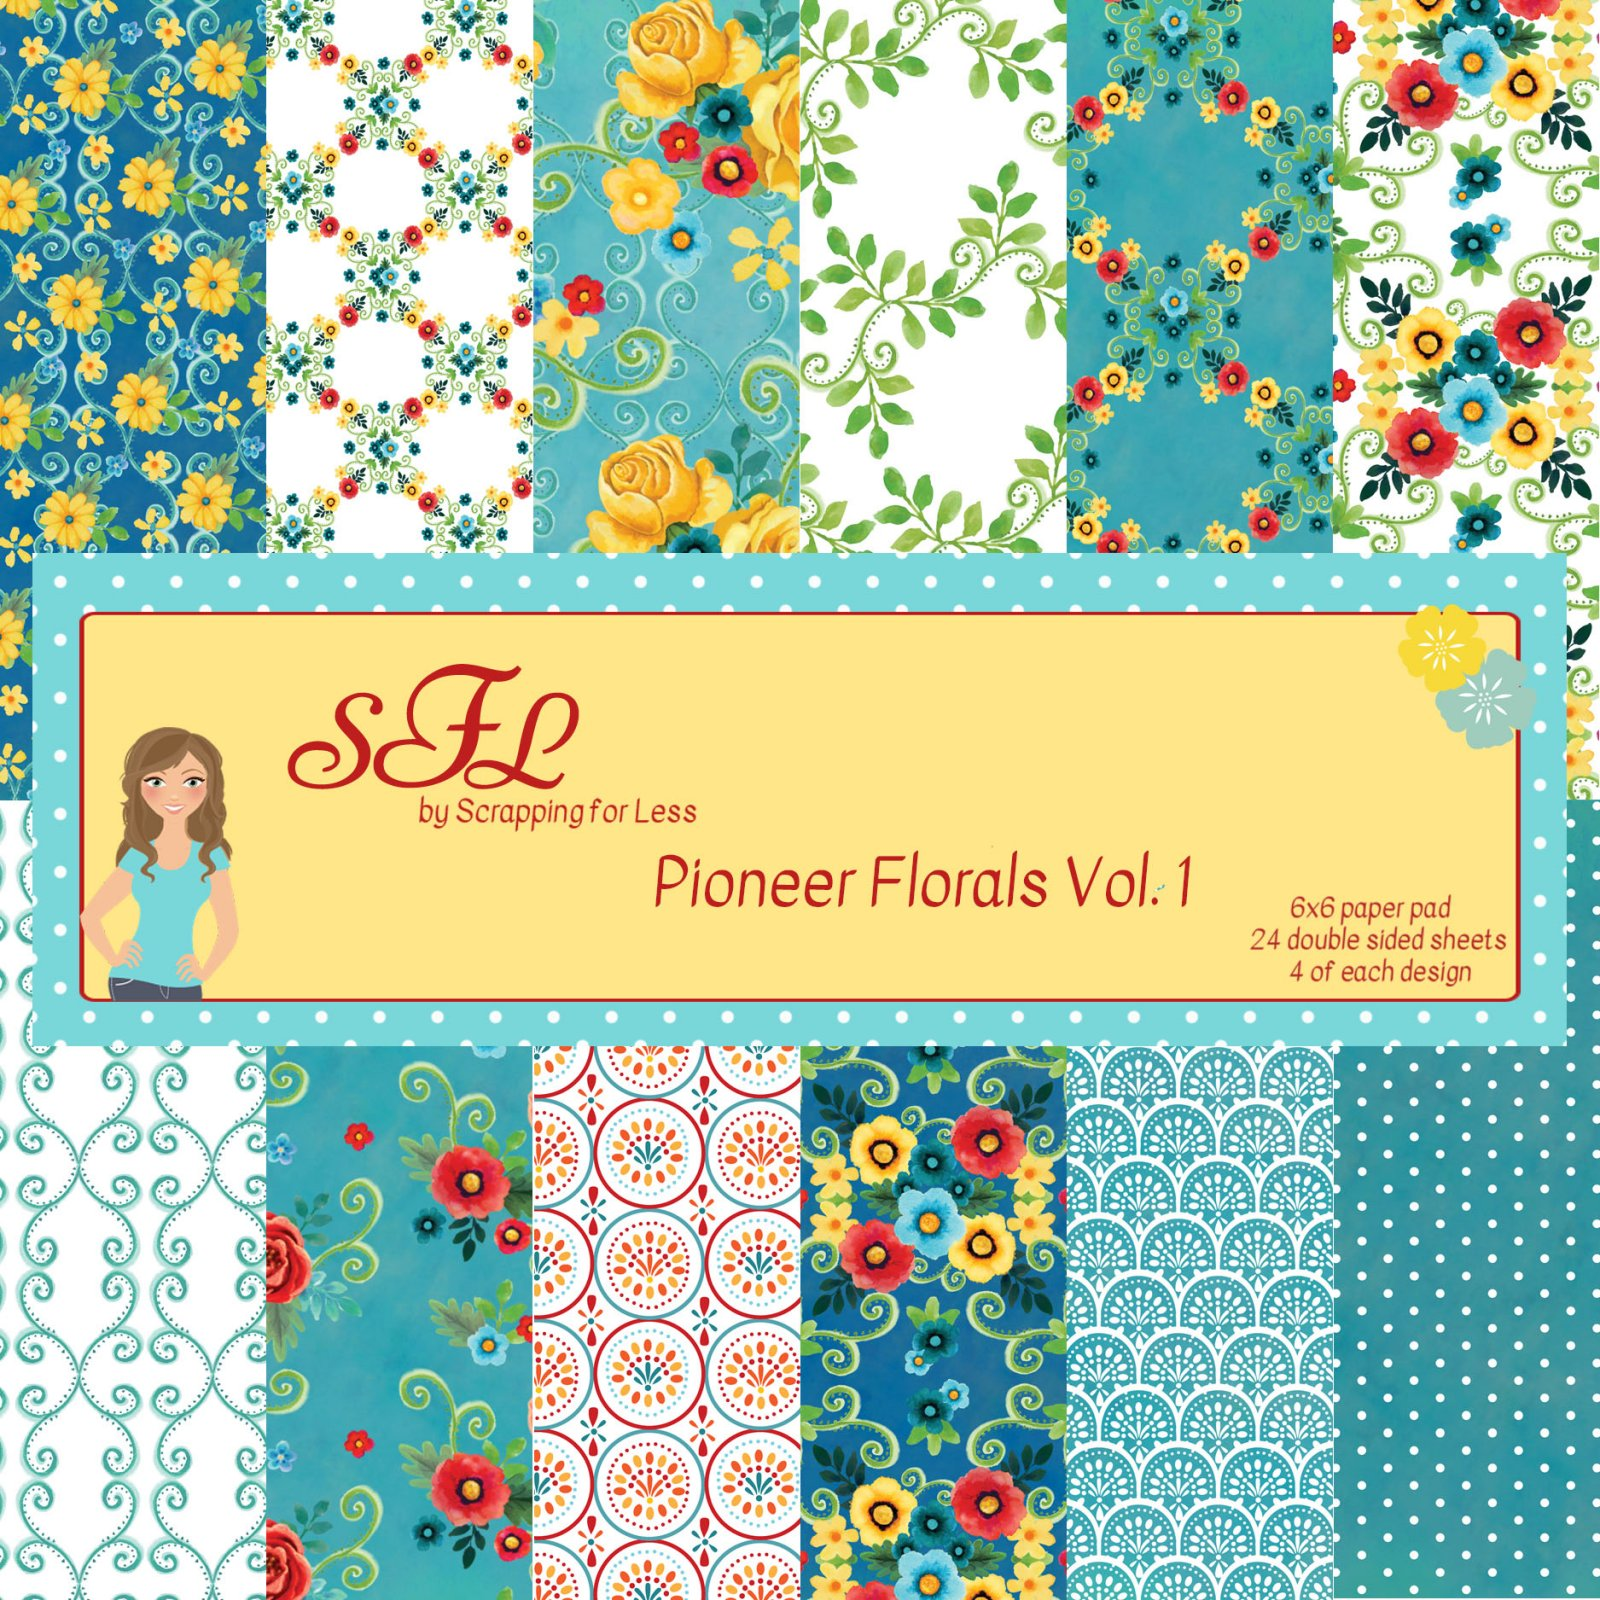 Scrapping for Less Pioneer Florals-Vol. 1 6x6 Paper Pad